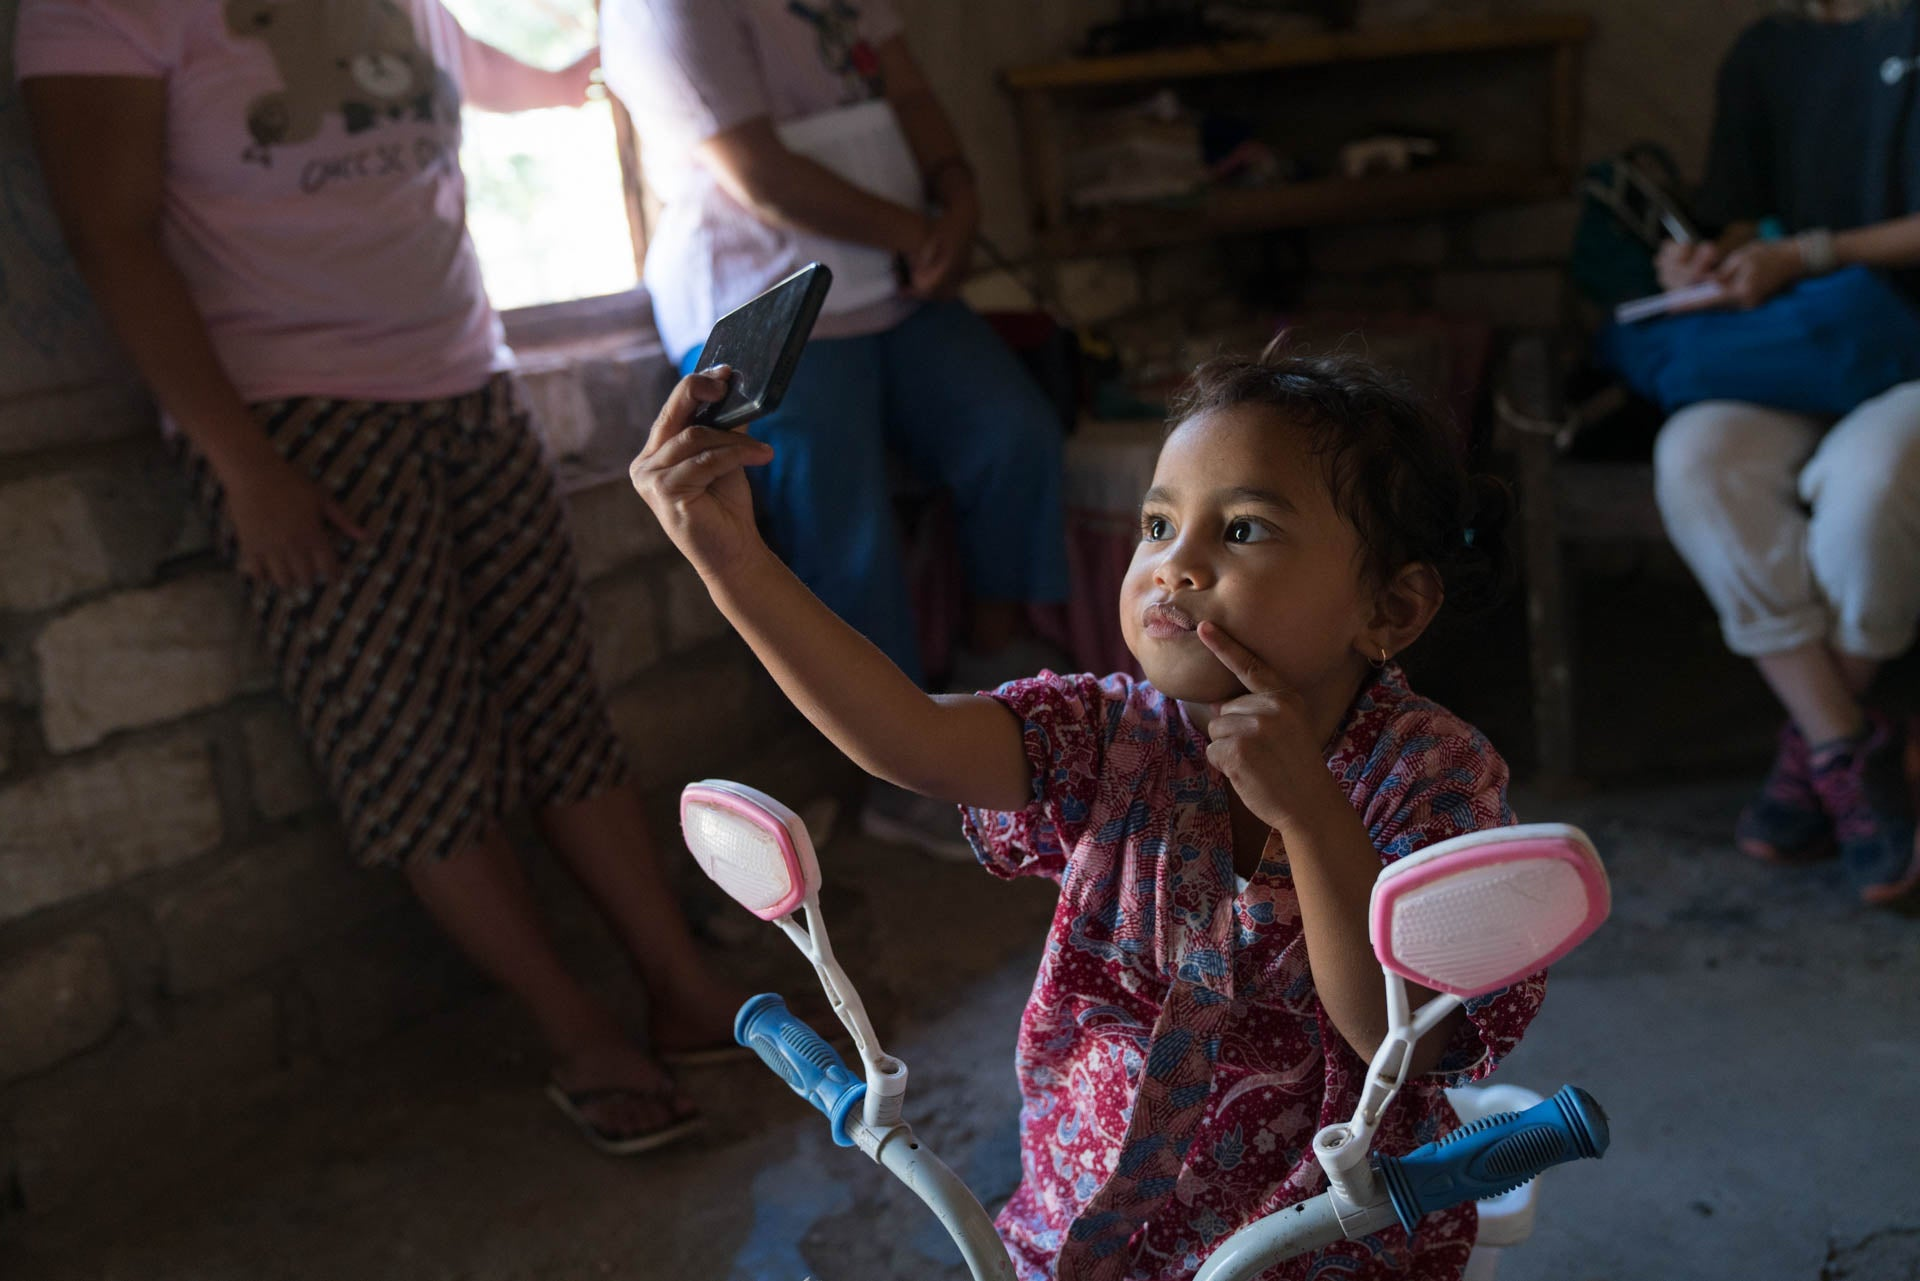 A little girl sitting on a bike, taking a selfie inside of a small brick home.